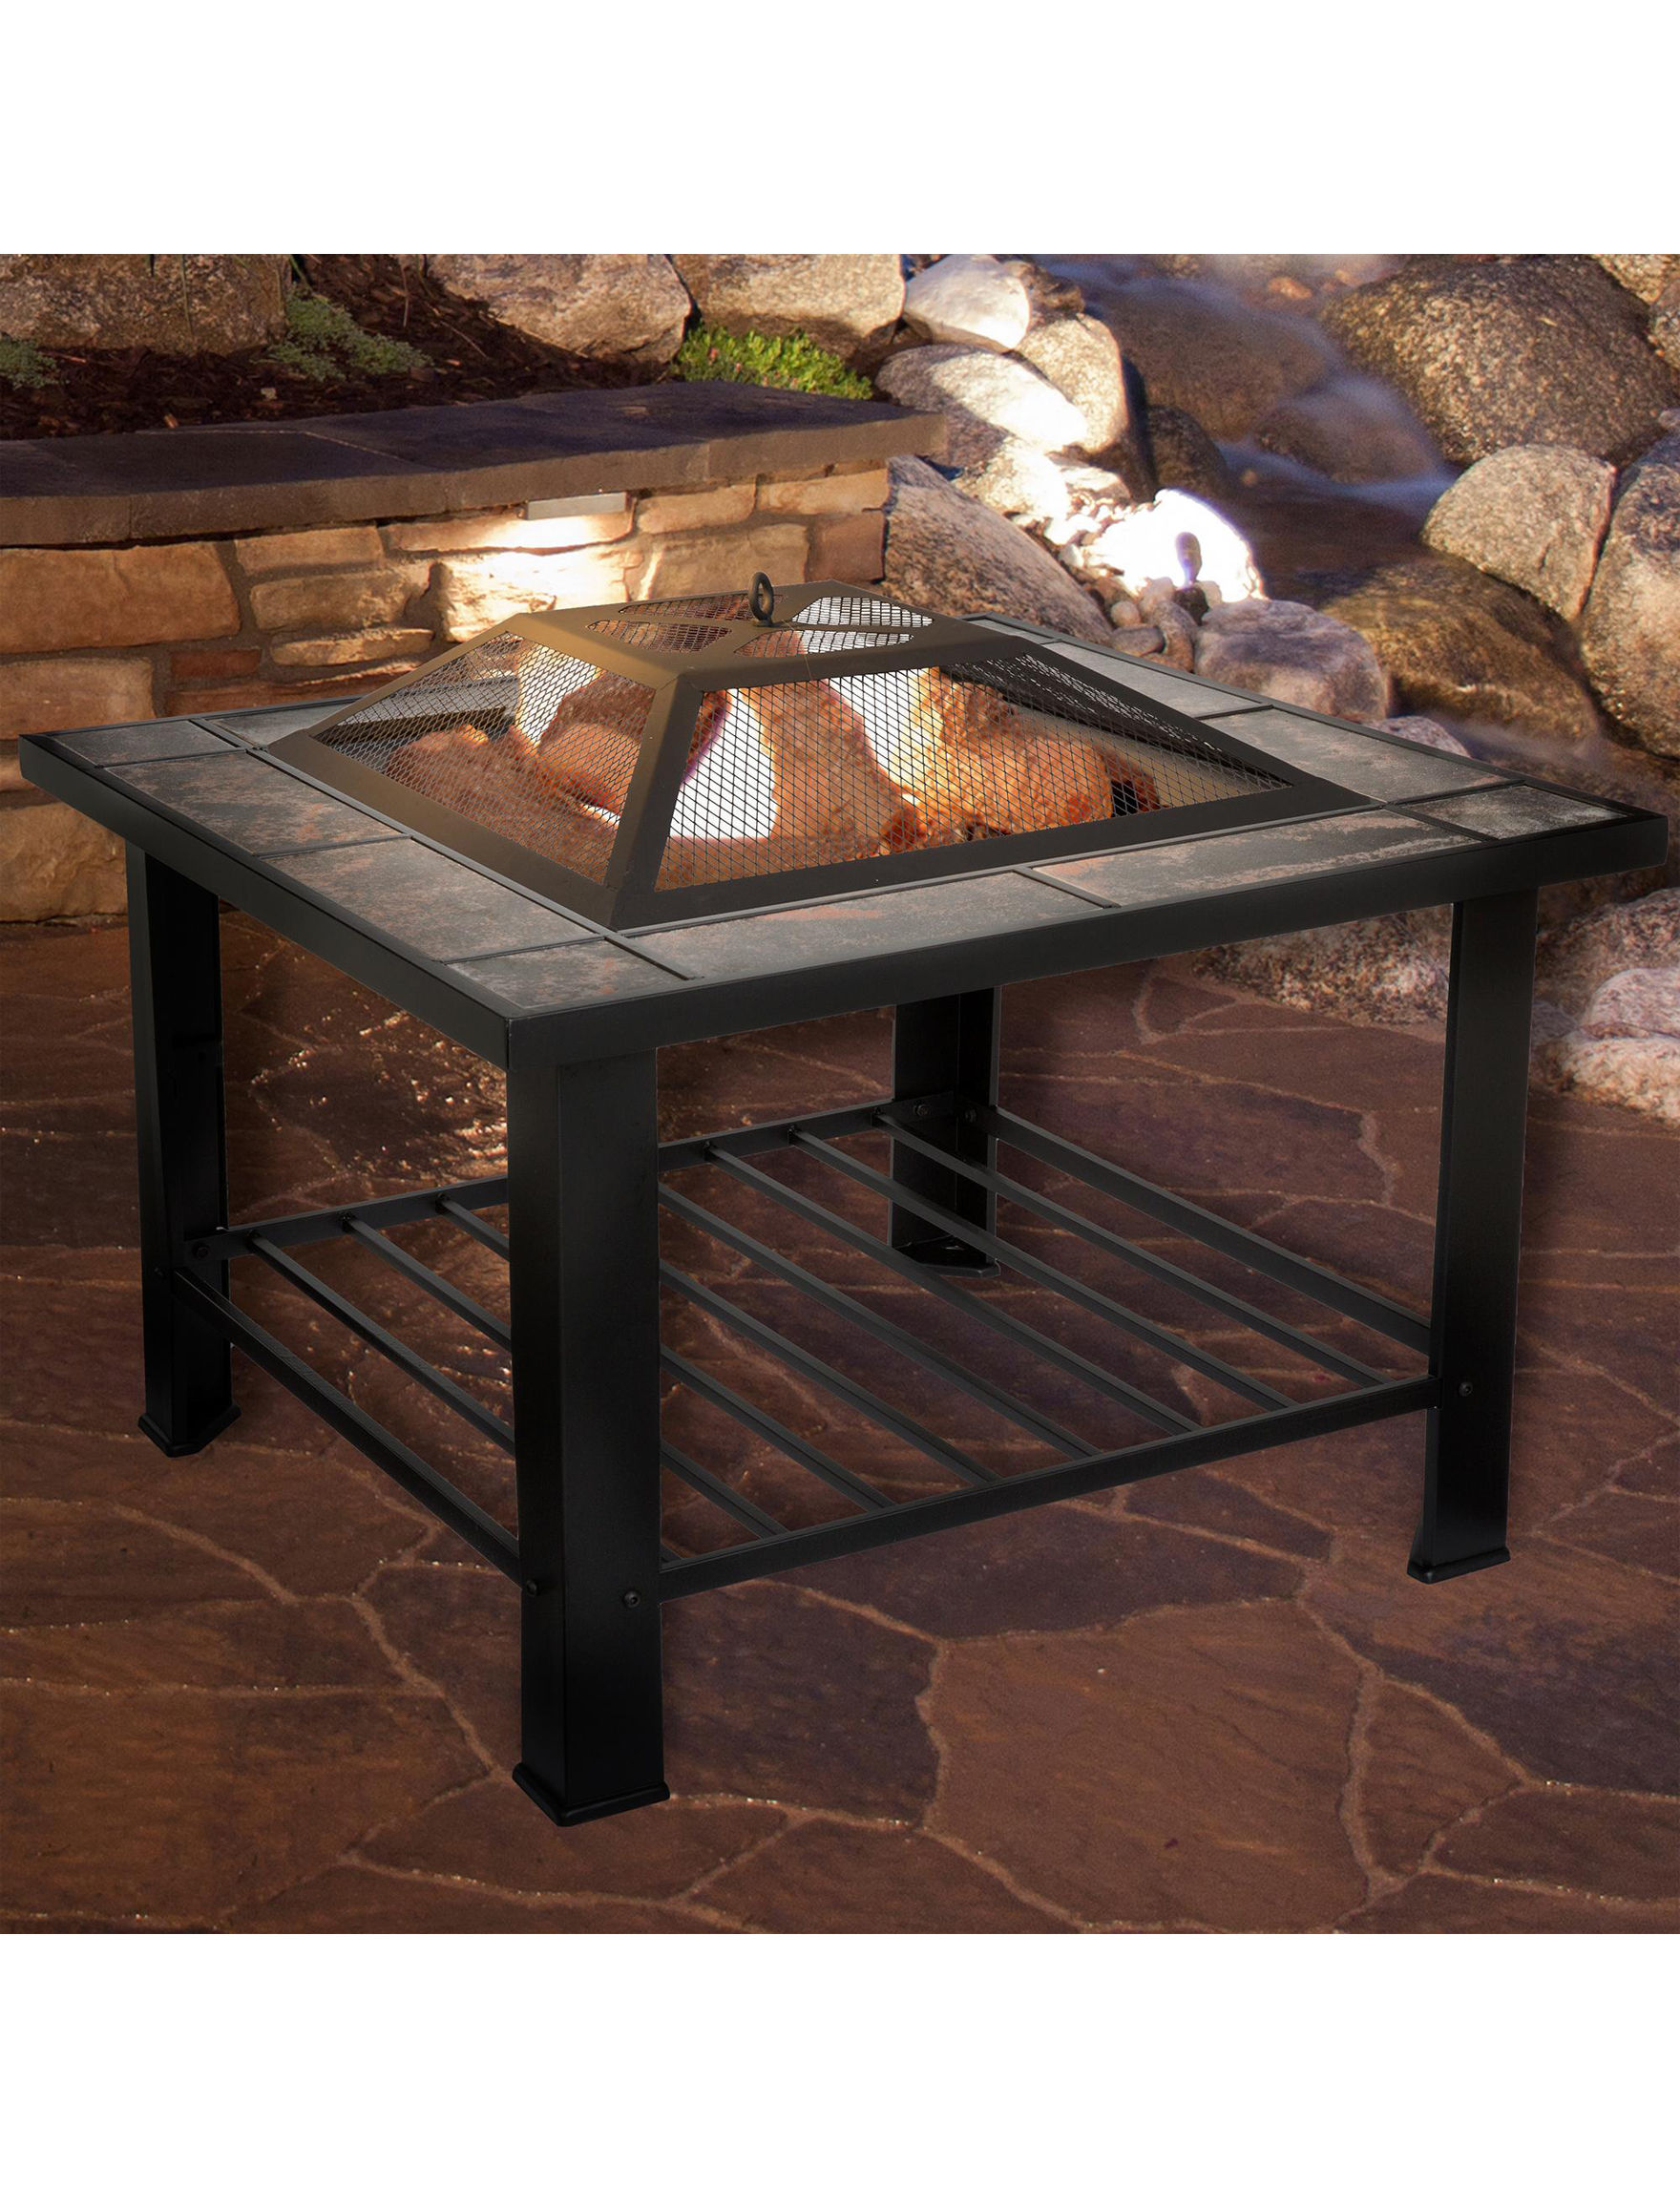 Trademark Global Black Decorative Objects Outdoor Entertaining Patio & Outdoor Furniture